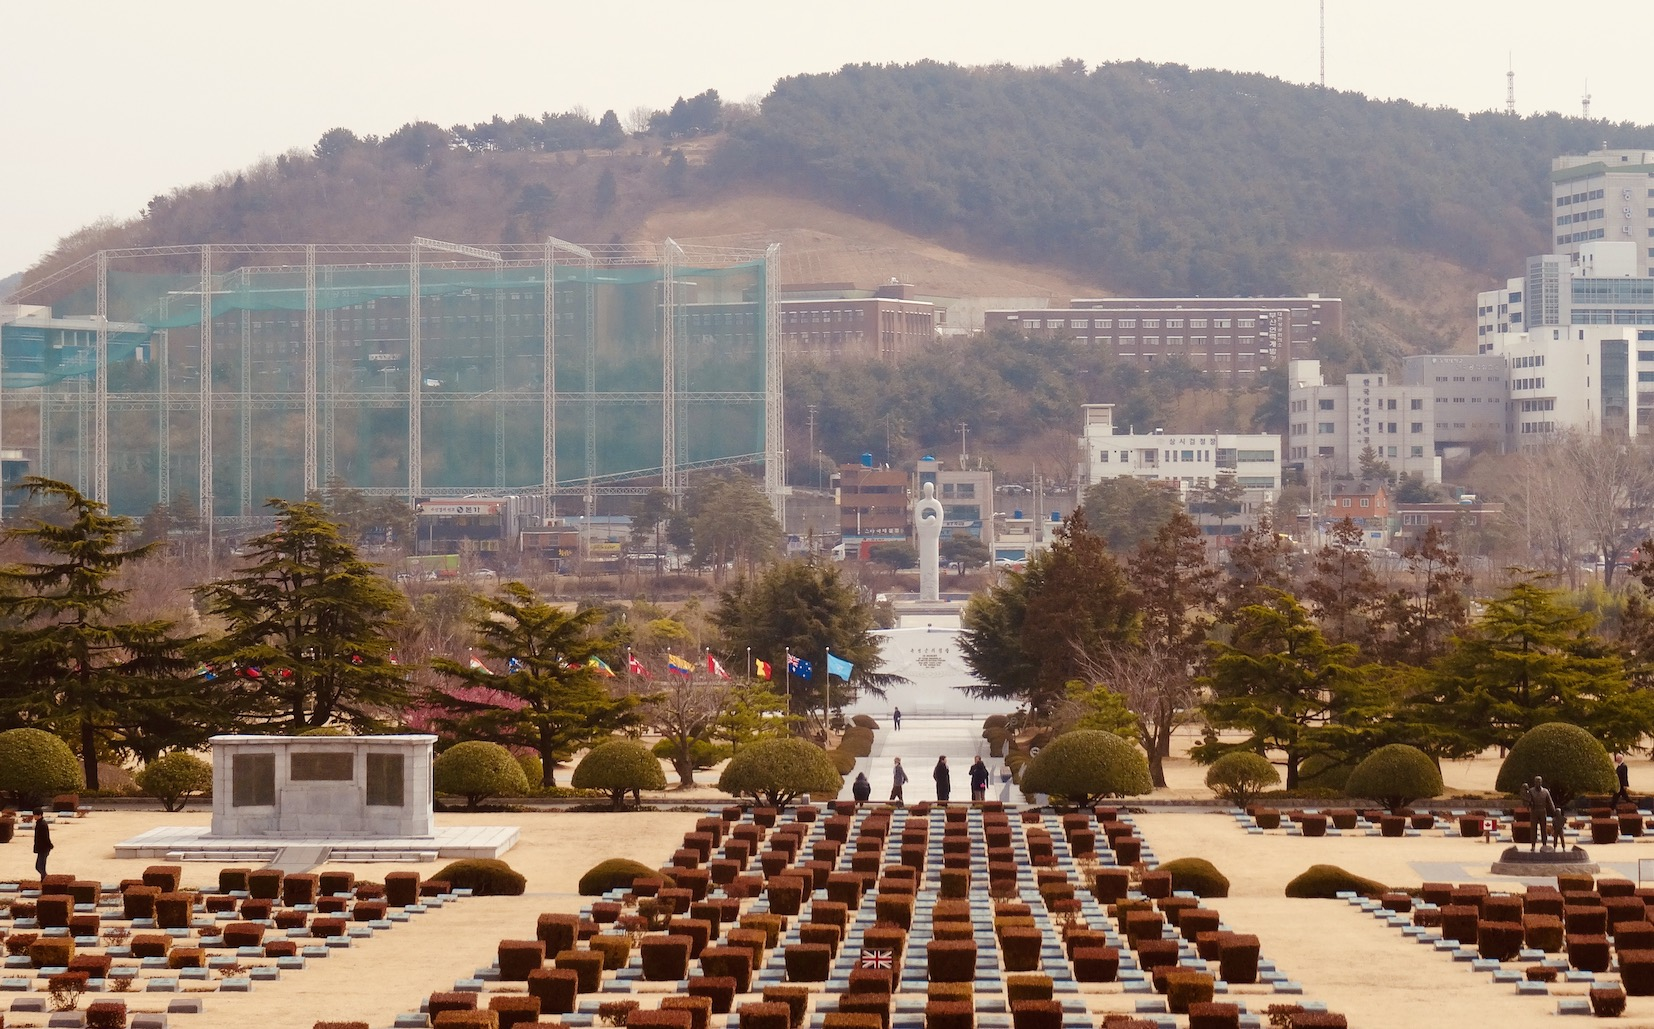 United Nations Memorial Cemetery Busan.